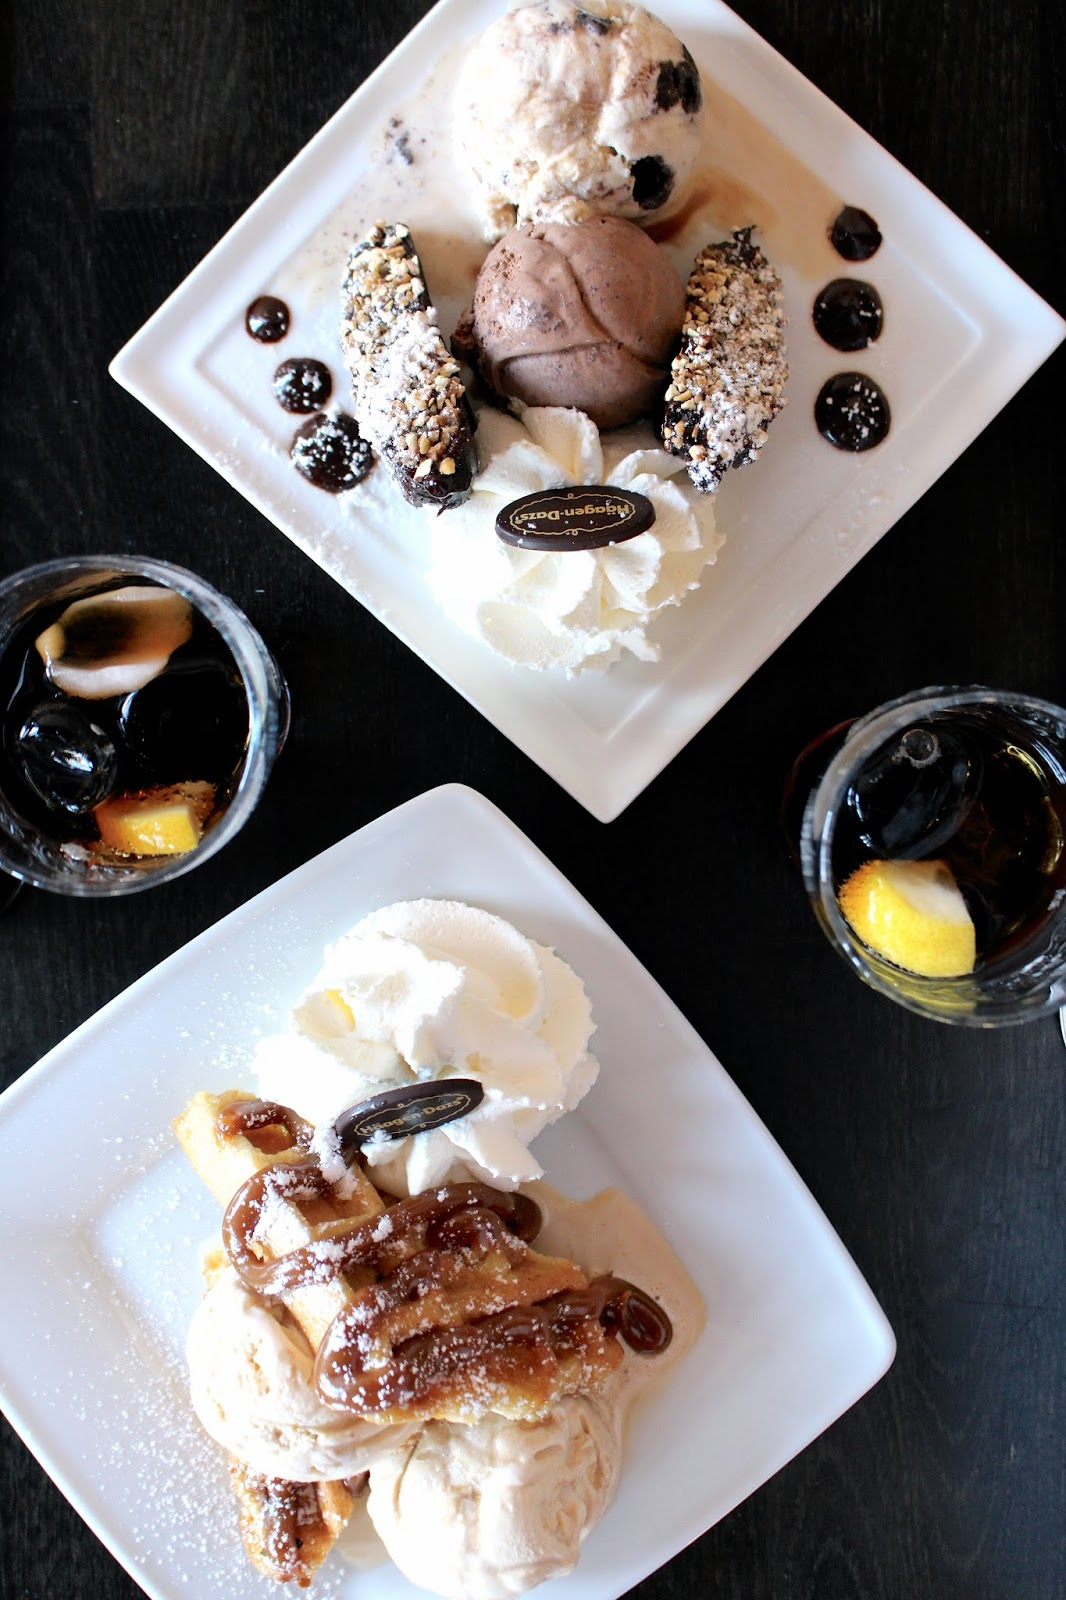 Haagen Dazs warm brownies and waffles desserts